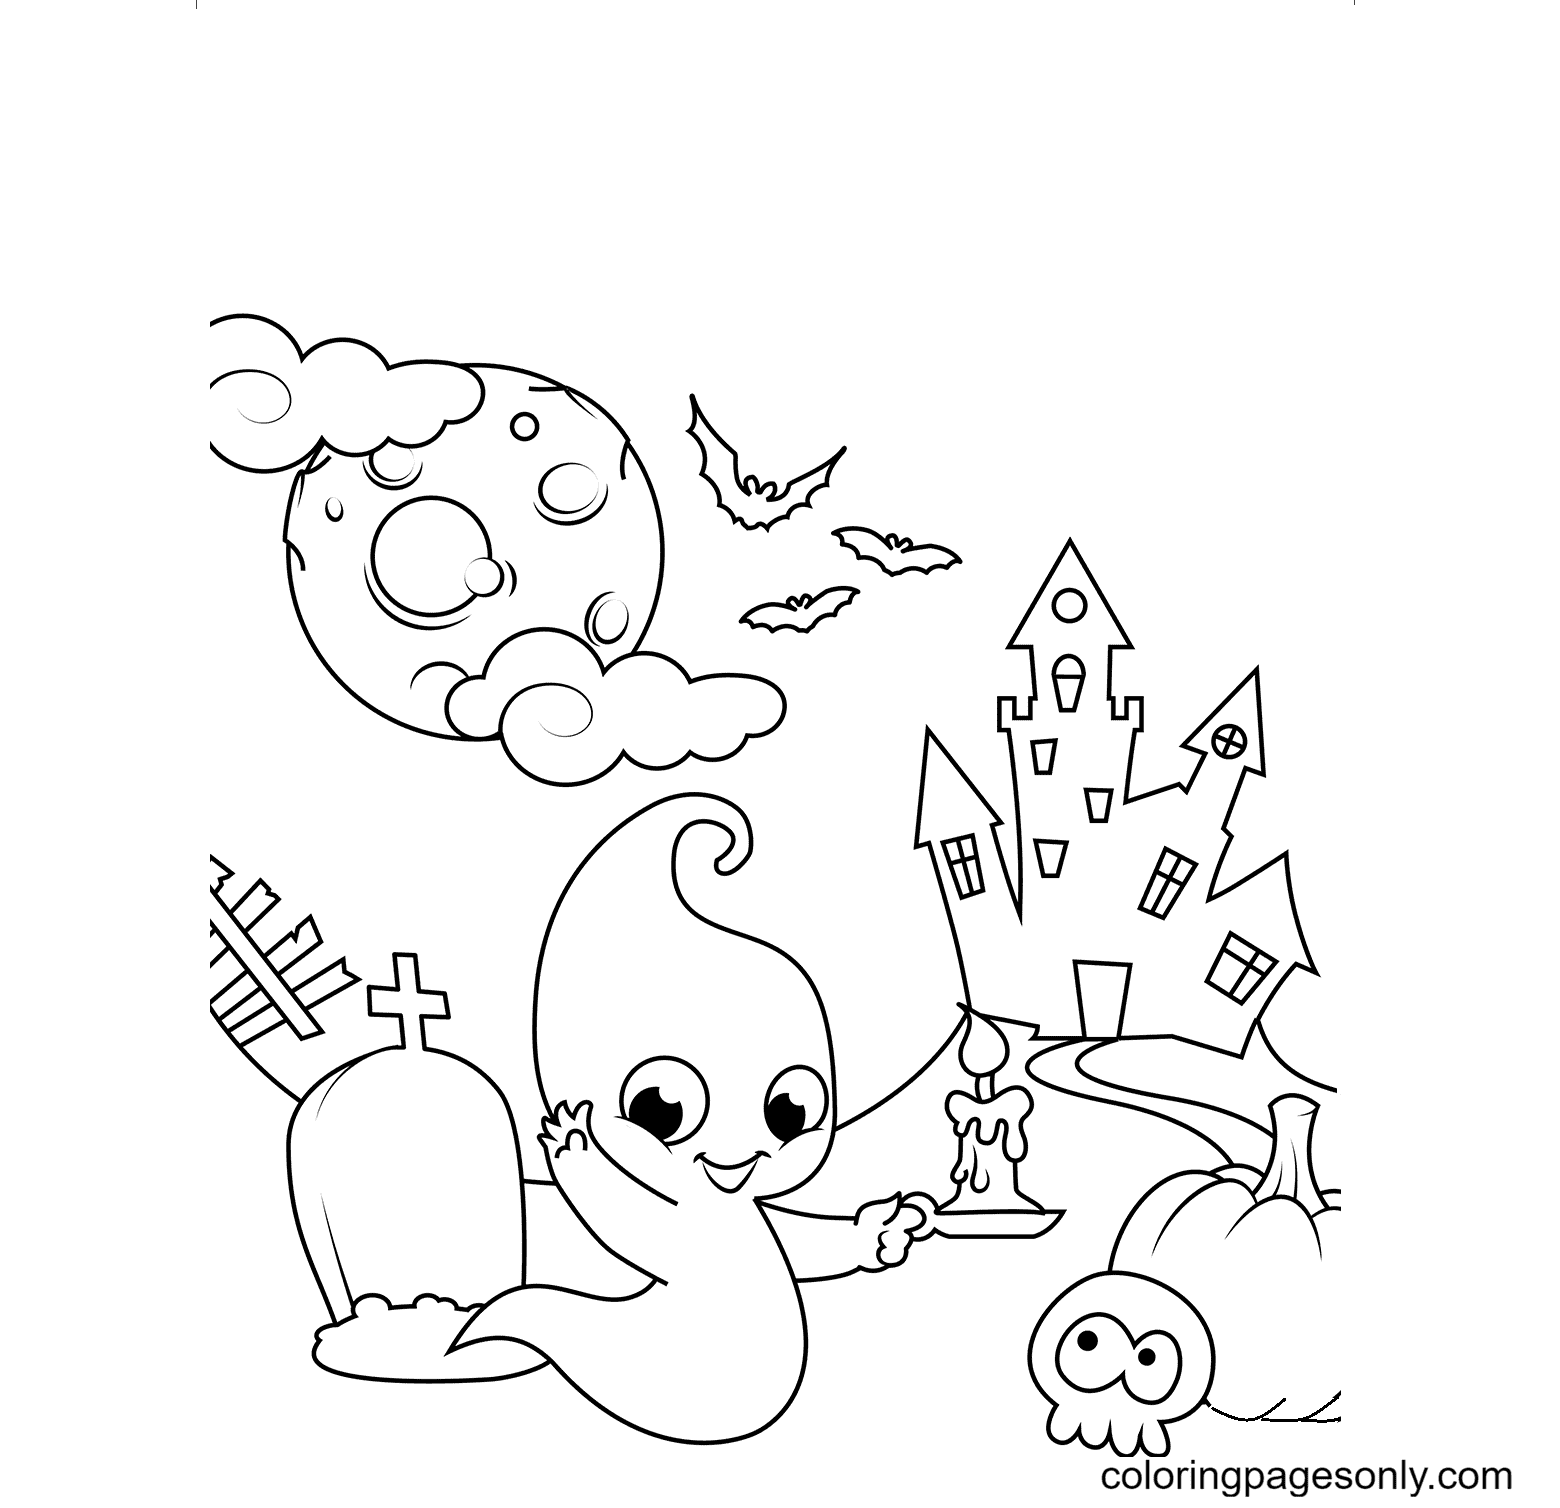 Haunted House with a Cute Ghost Coloring Page